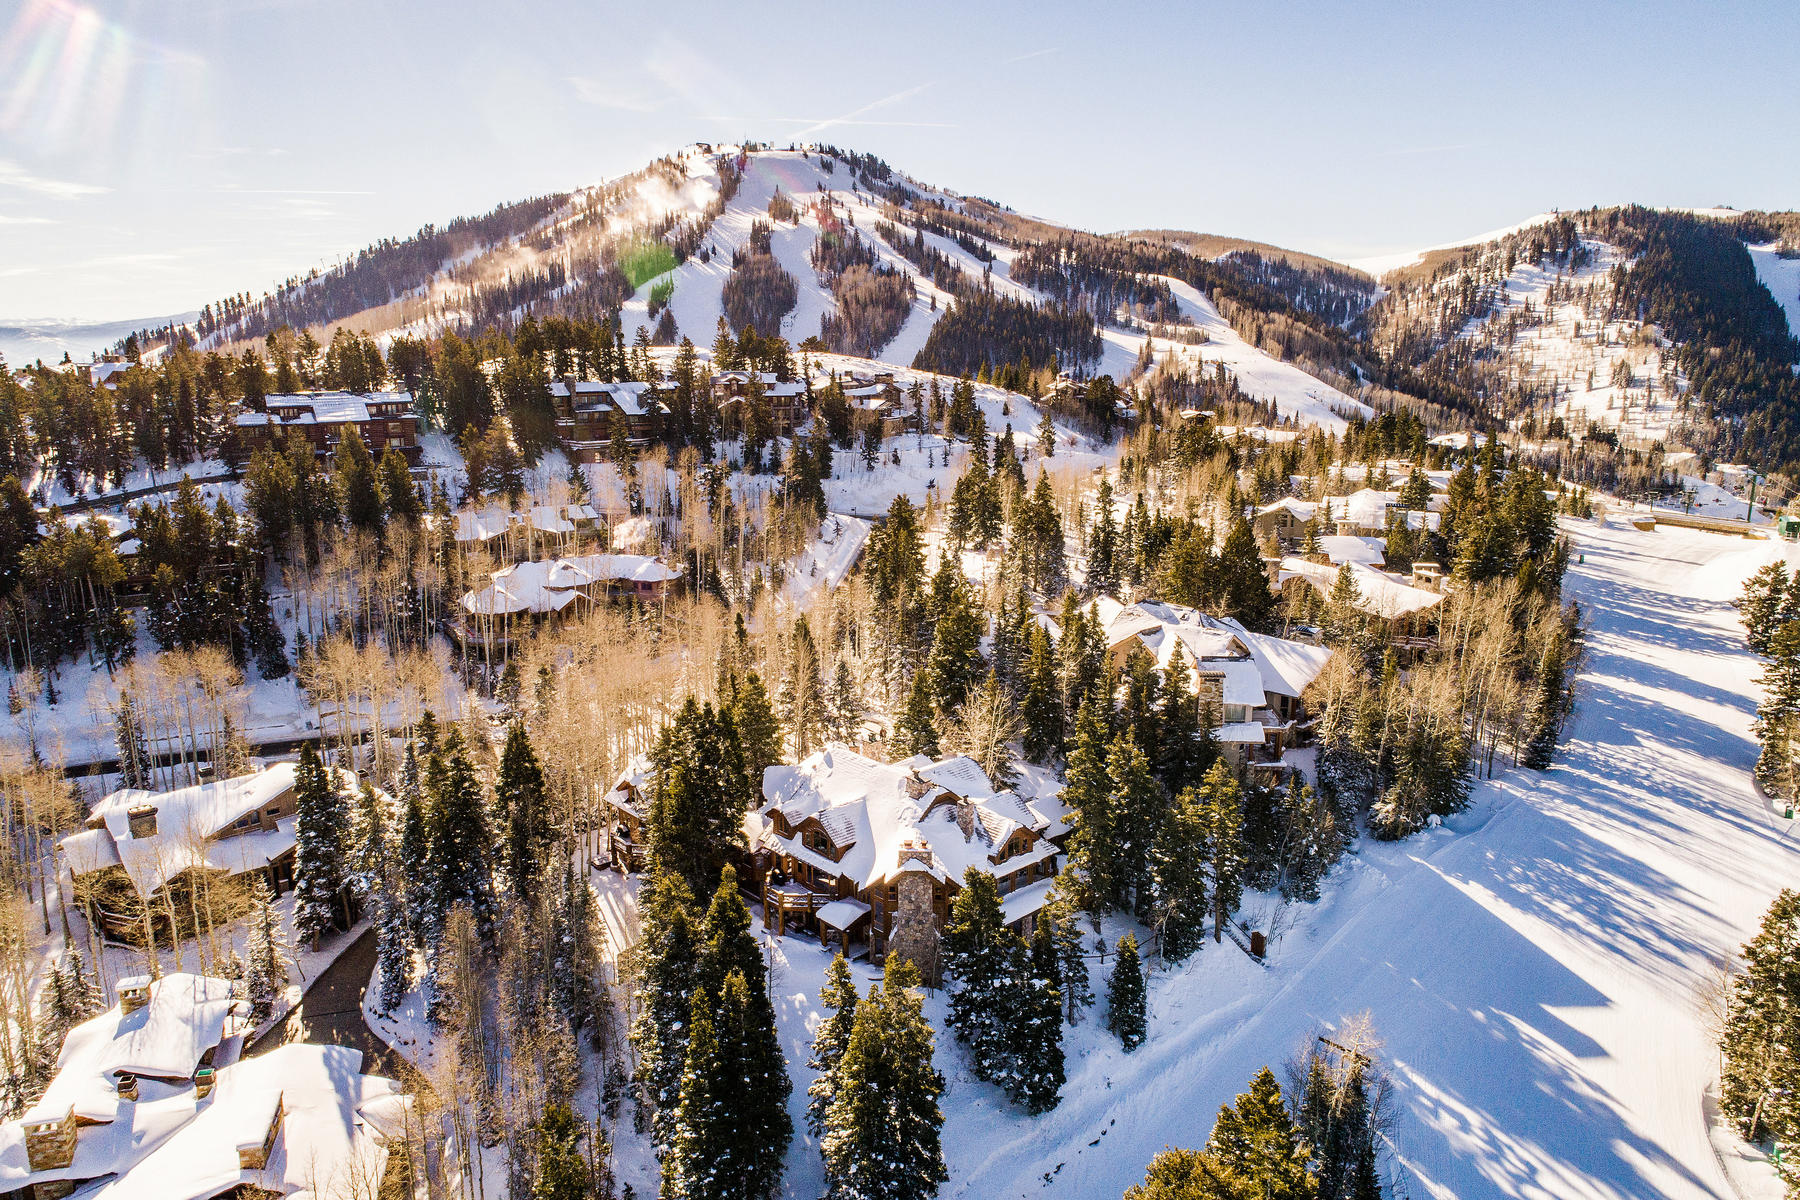 Single Family Homes for Active at Gated Ski Estate Located Slope-side at Deer Valley Resort 7885 Bald Eagle Dr Park City, Utah 84060 United States